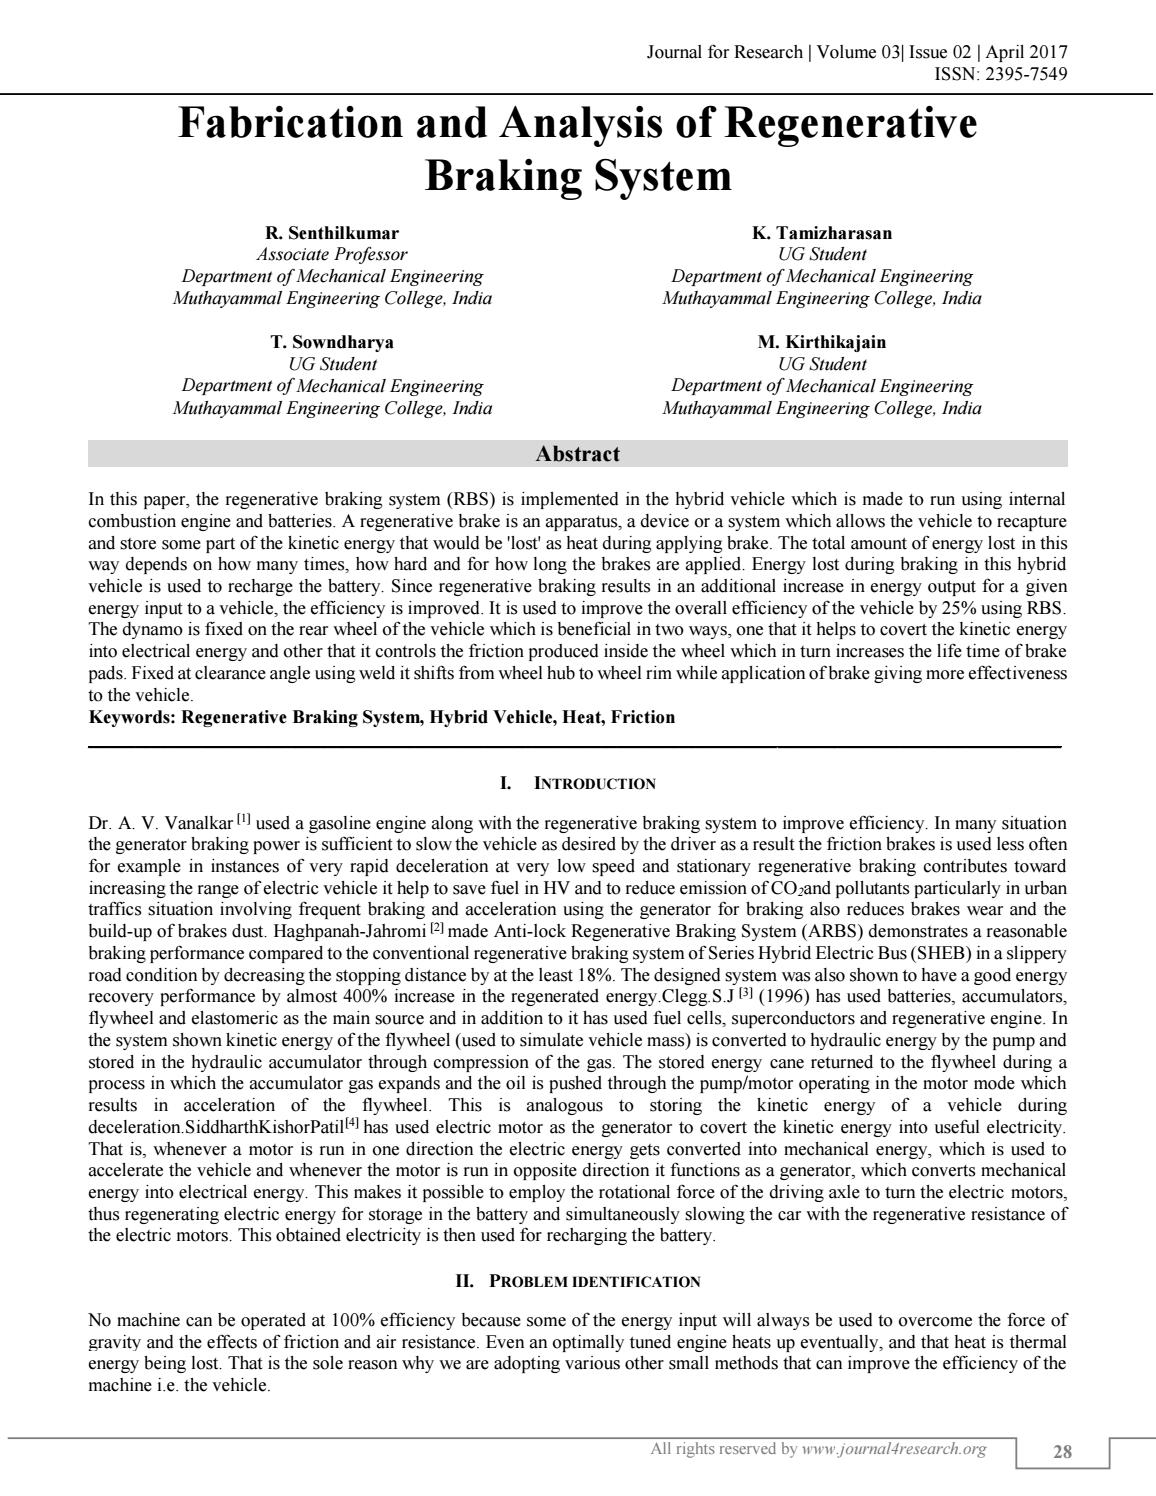 FABRICATION AND ANALYSIS OF REGENERATIVE BRAKING SYSTEM by